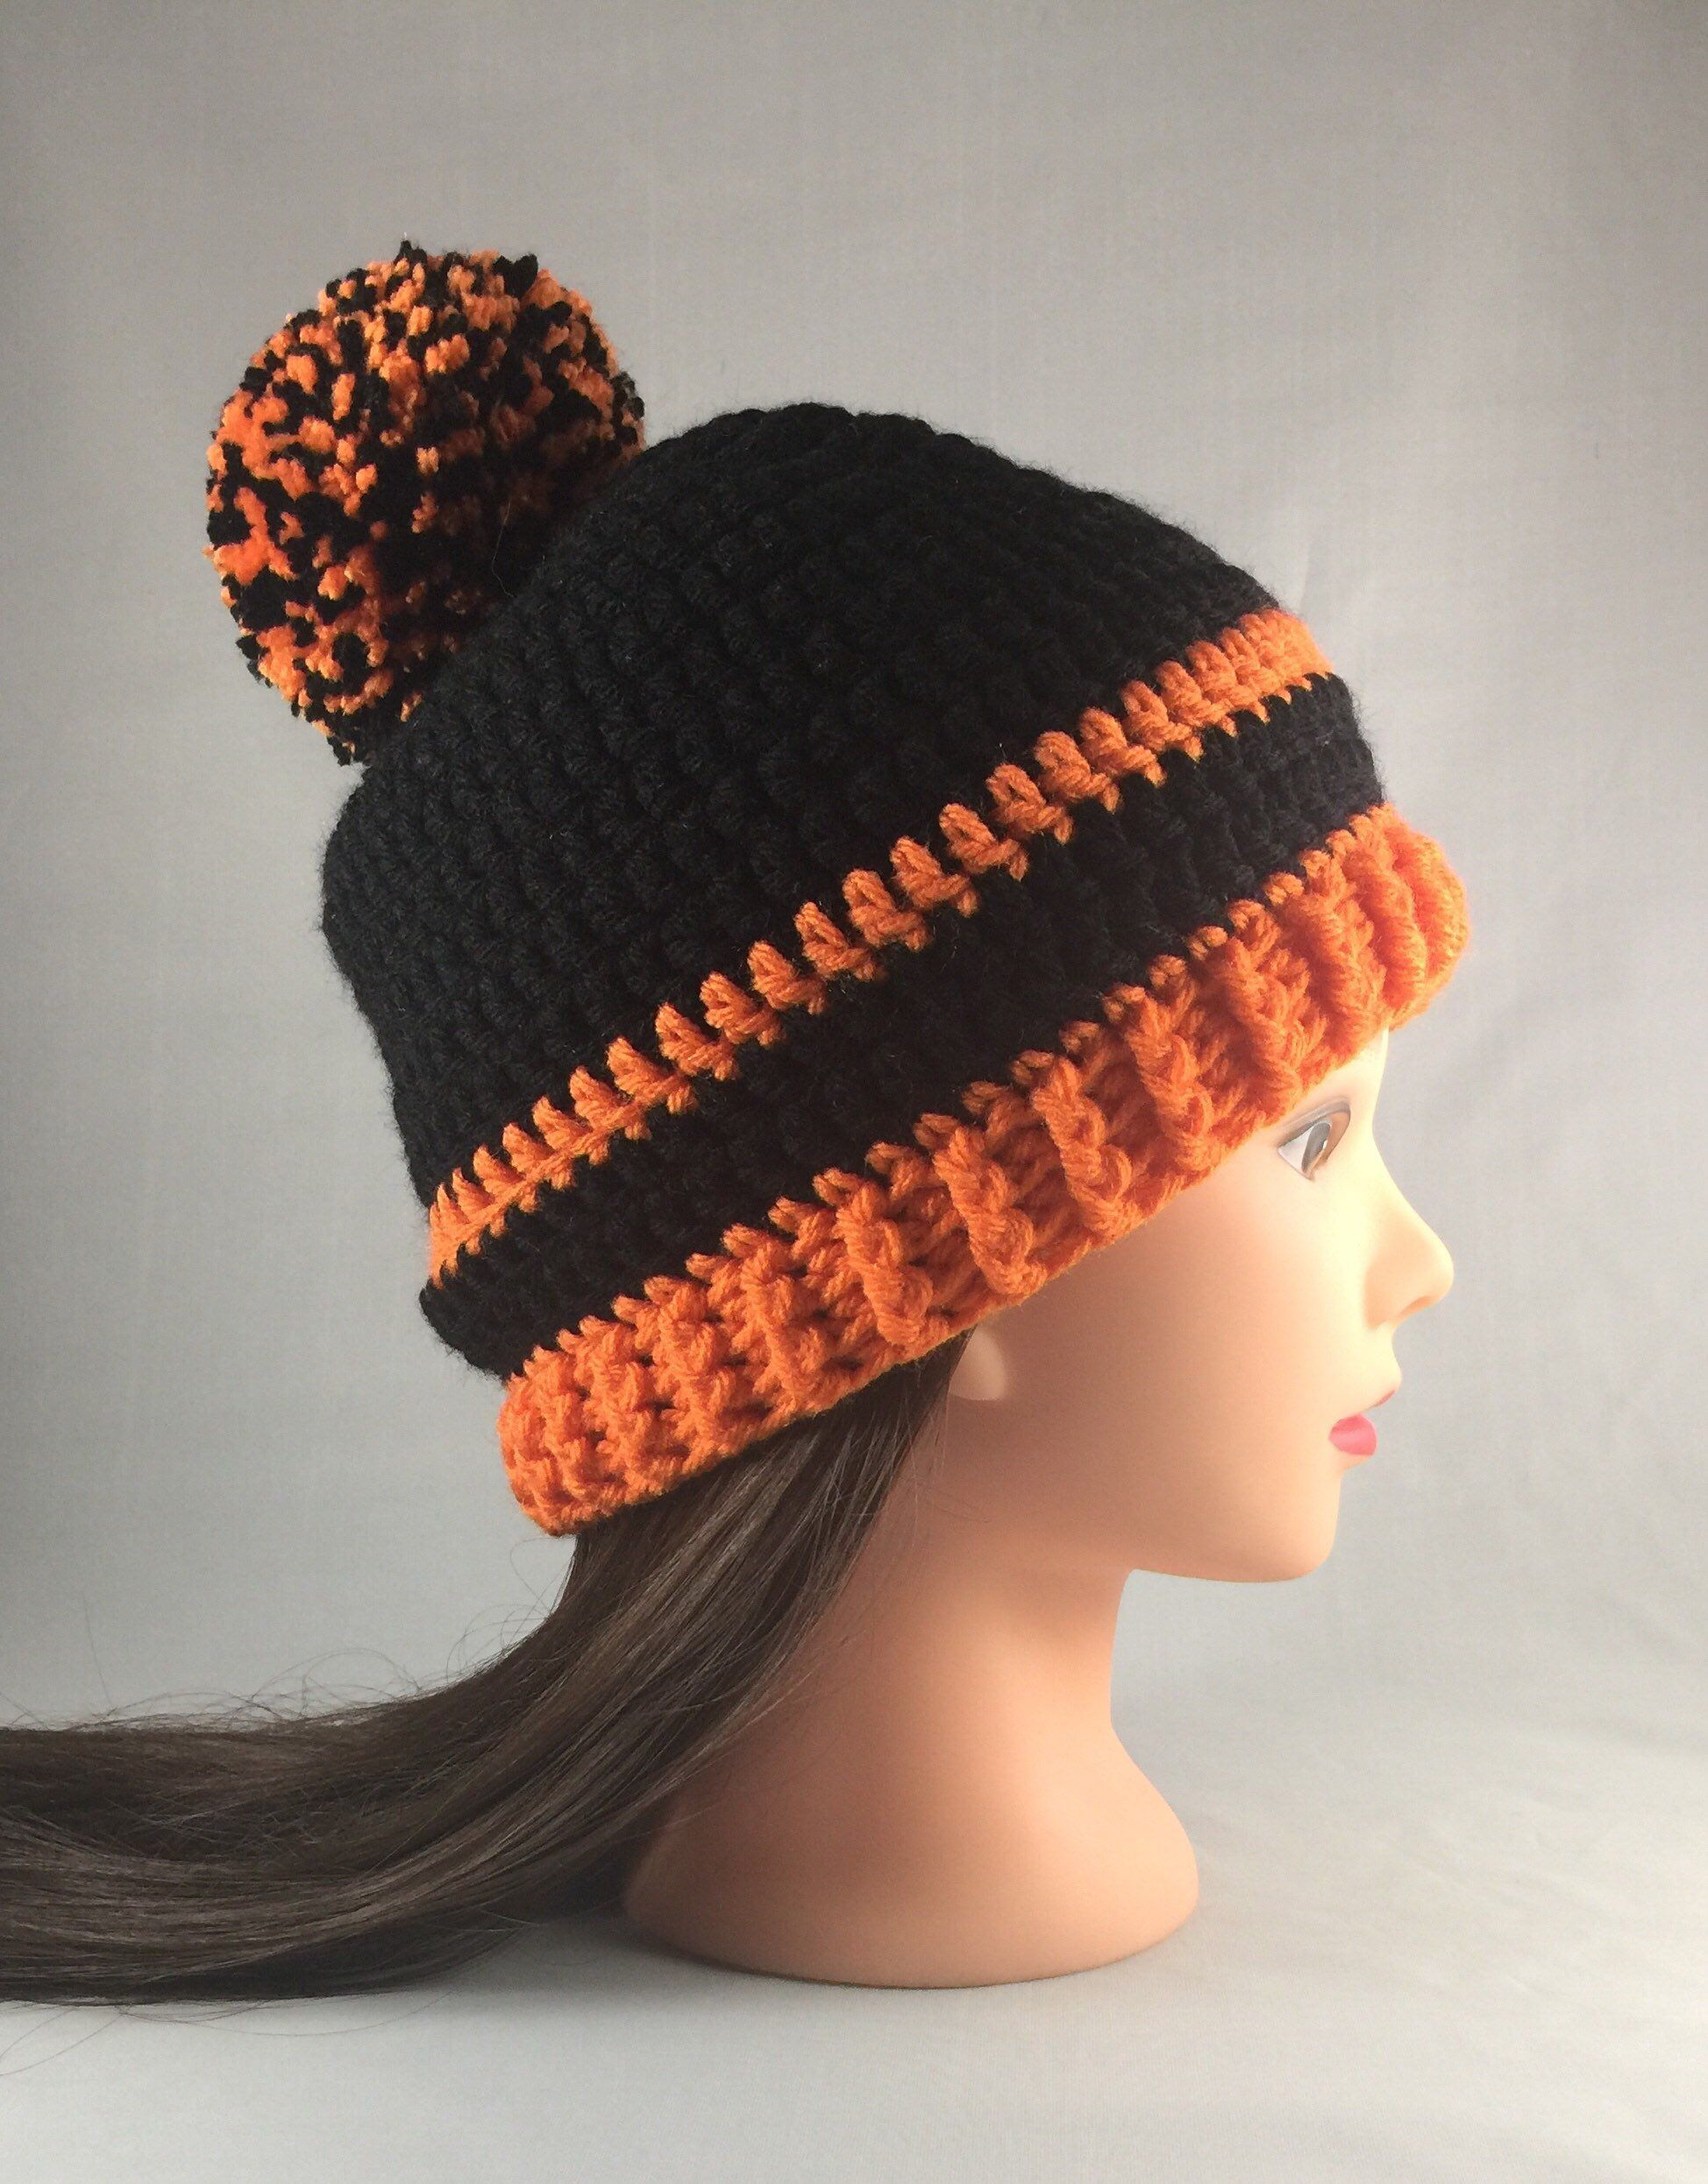 ea092d41781 ORIOLES FALL WINTER Pom Pom Hat - Orange and Black Beanie - Show your Team